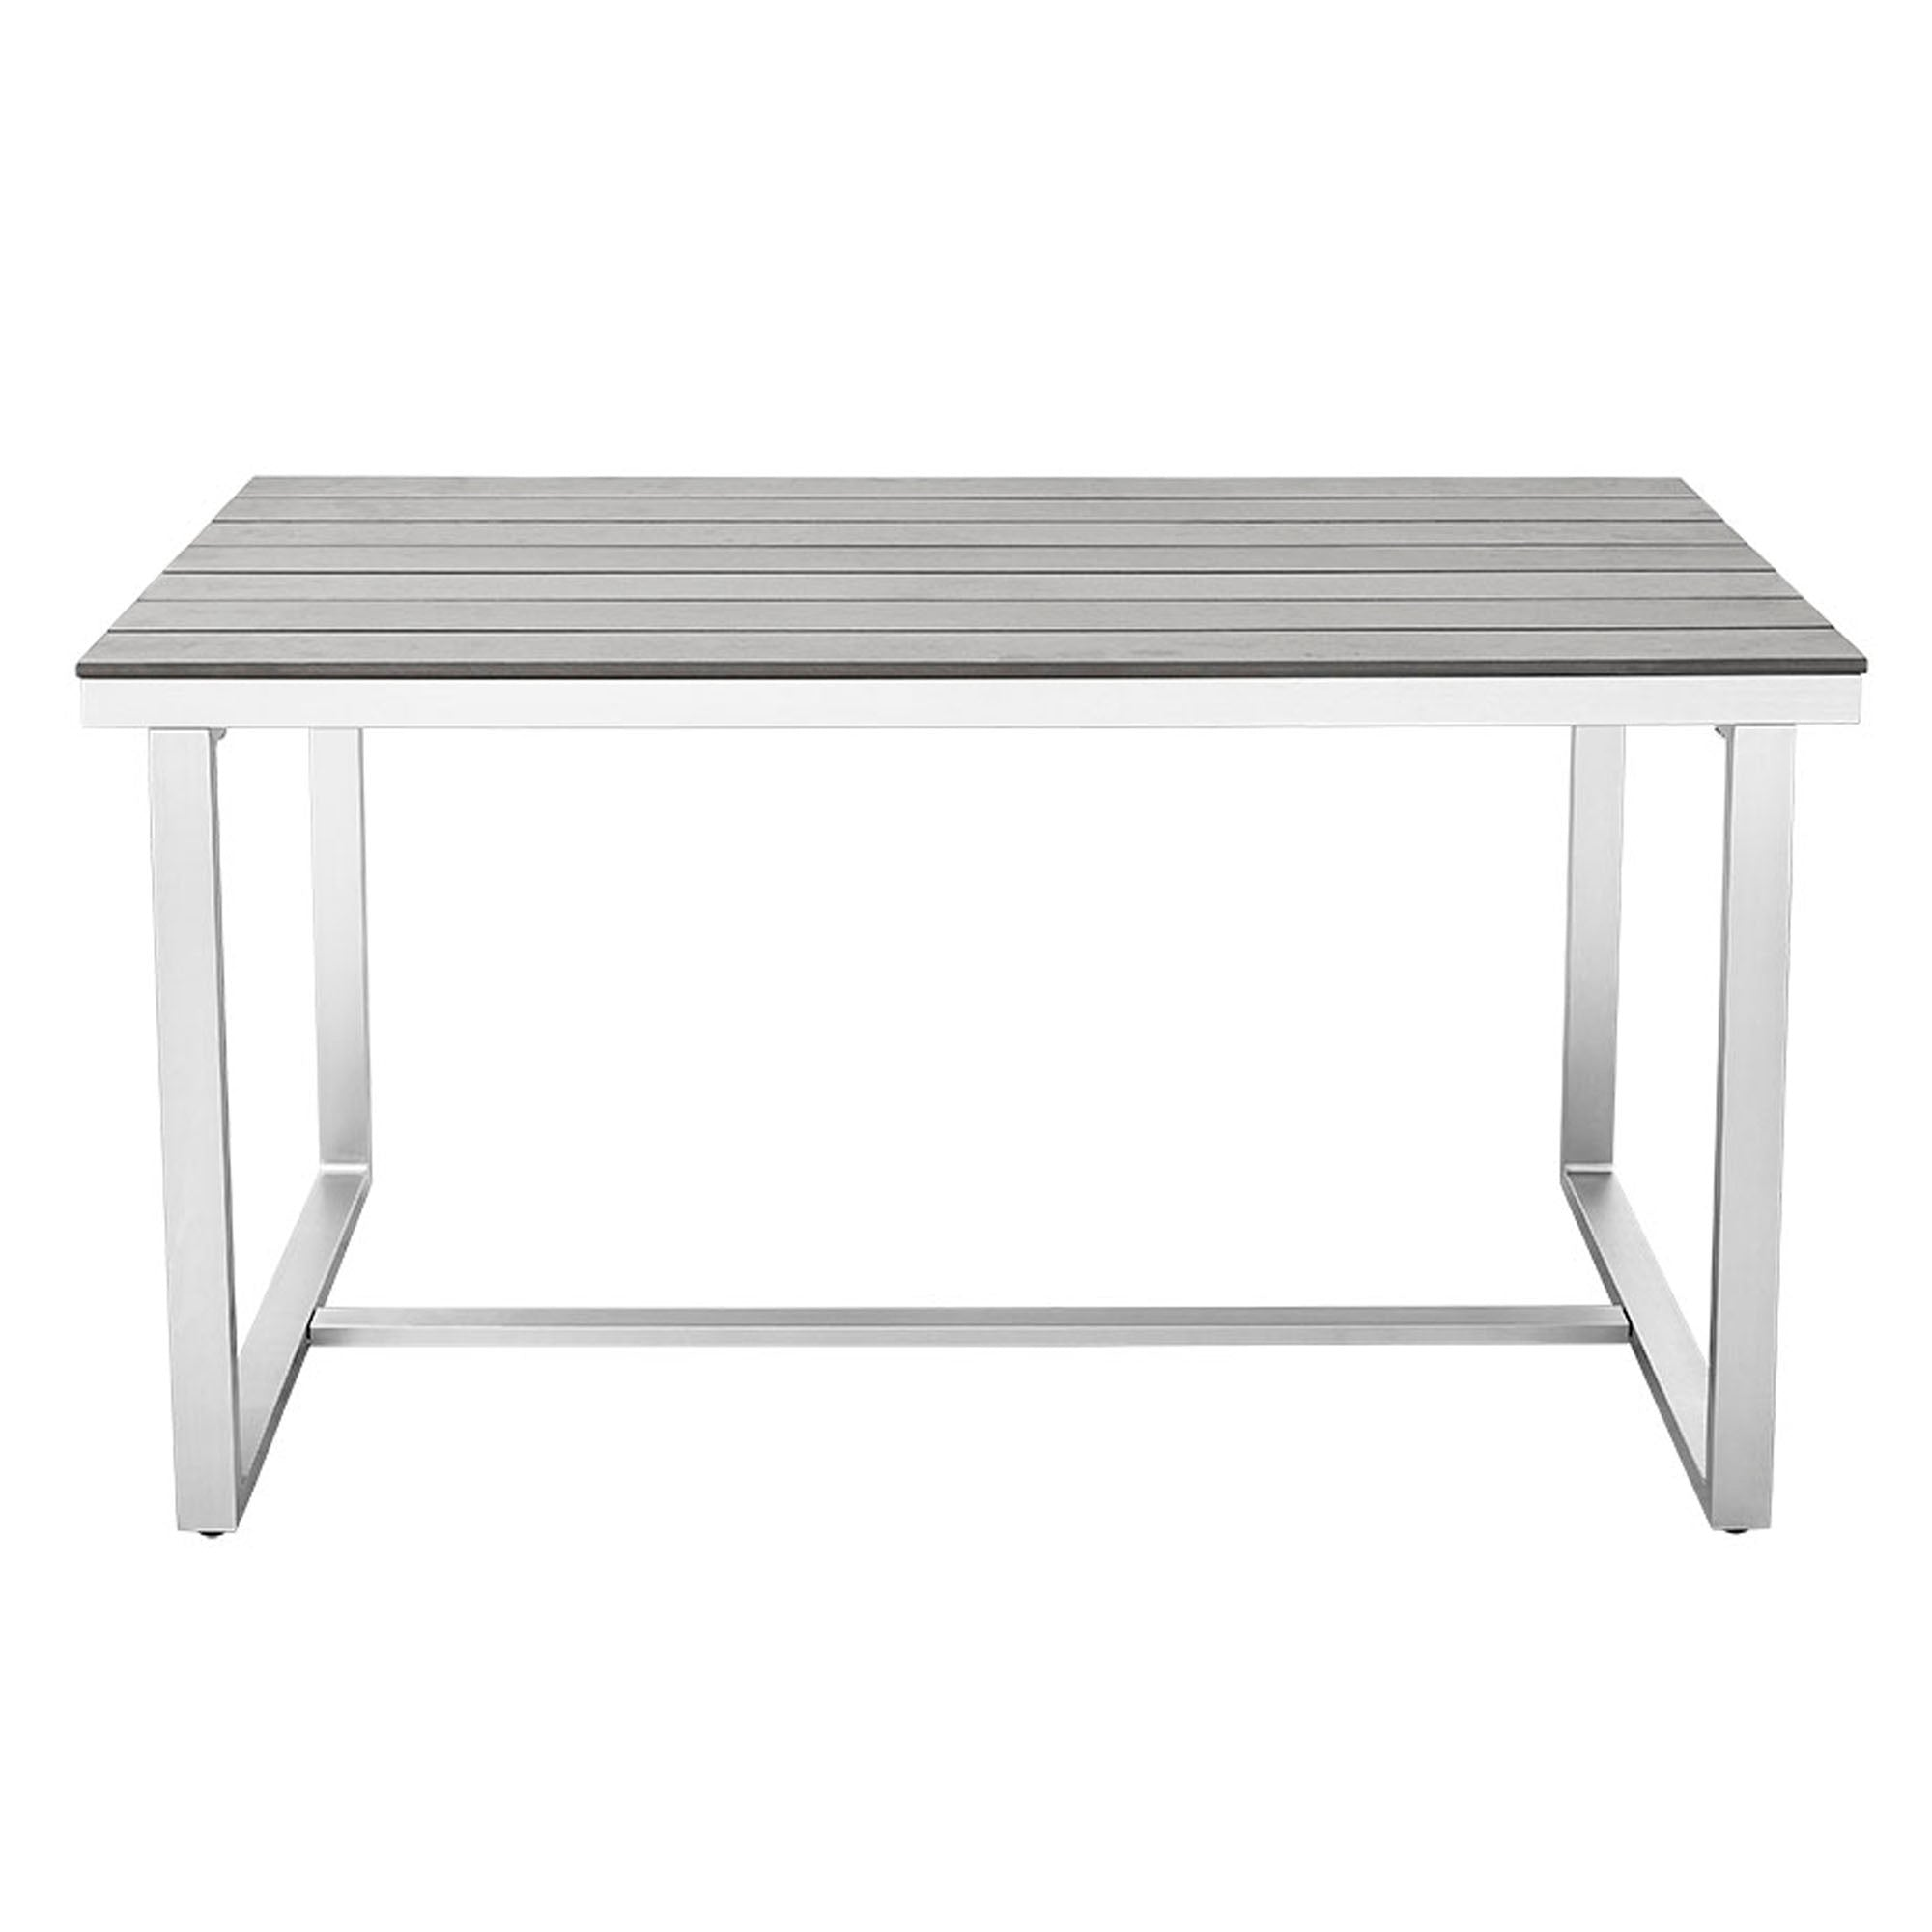 All-Weather Dining Table - Grey